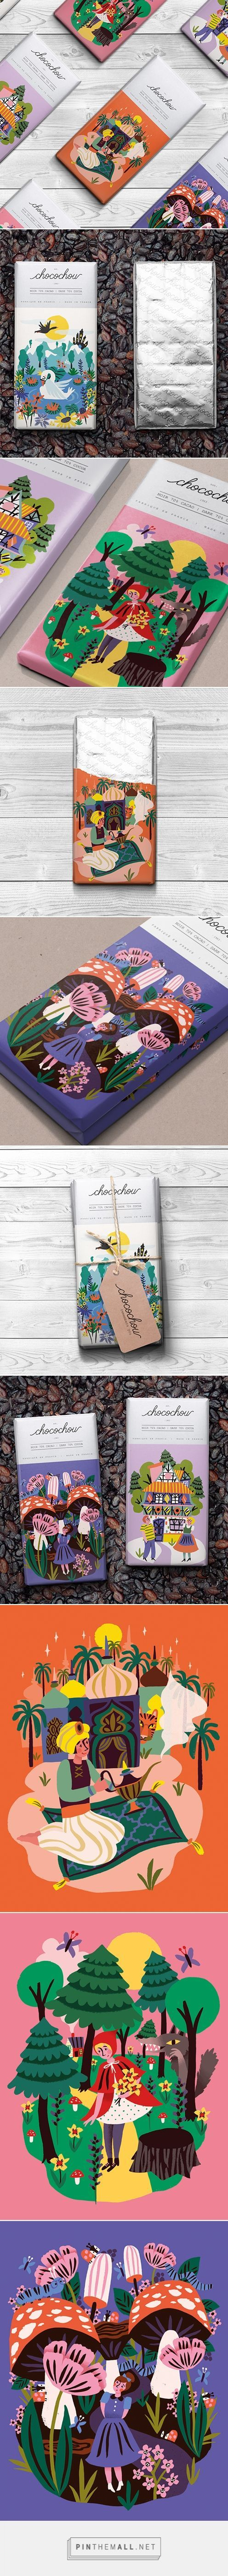 Graphic design, illustration and packaging for Fairytale Chocolate Bars / Chocochou on Behance byMarijke Buurlage Leeuwarden, Netherlands curated by Packaging Diva PD. Yummy fantasy chocolate.: